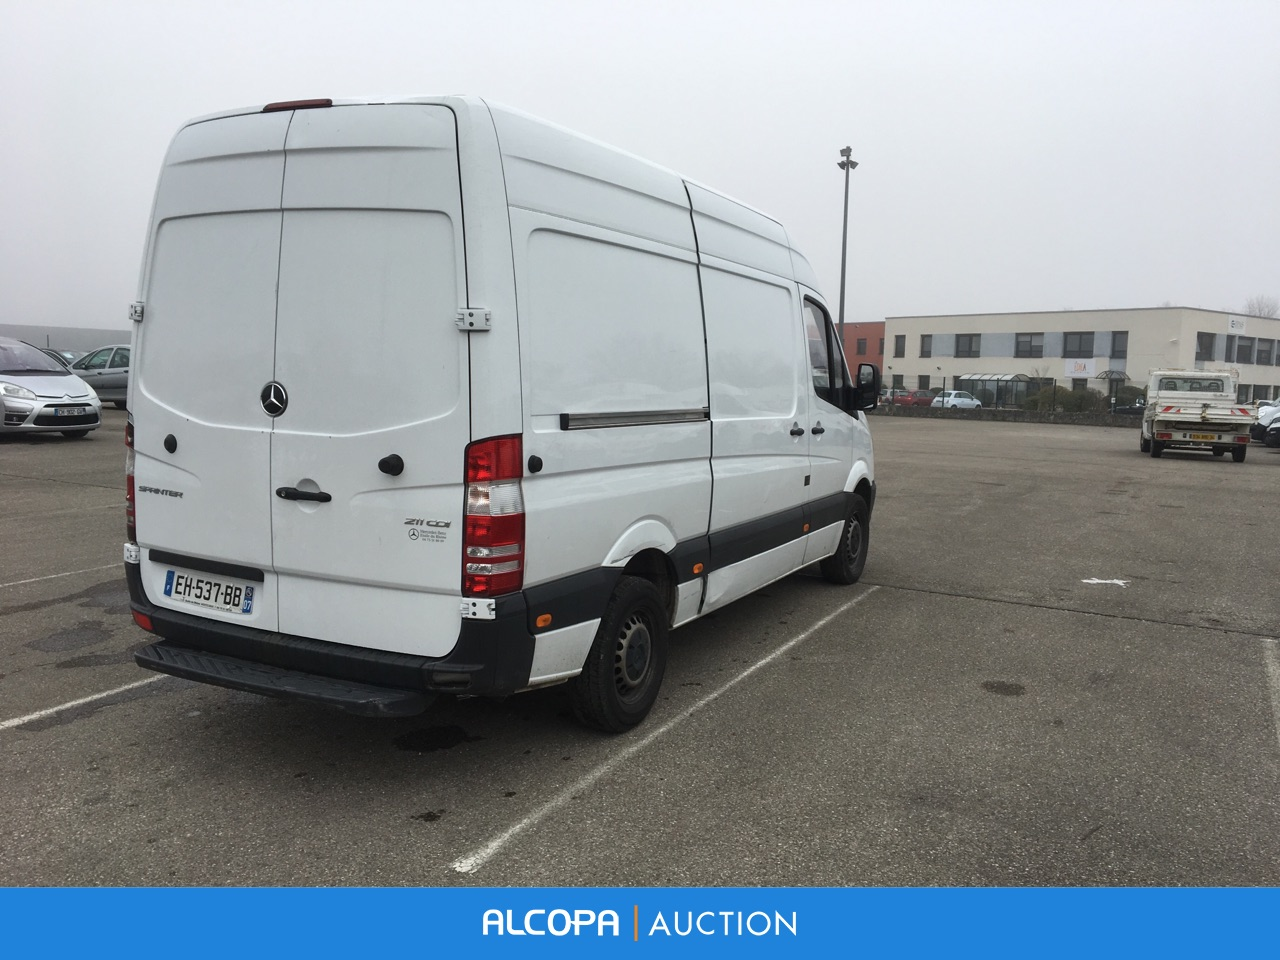 mercedes benz sprinter fourgon sprinter fgn 211 cdi 37s 3 0t lyon alcopa auction. Black Bedroom Furniture Sets. Home Design Ideas